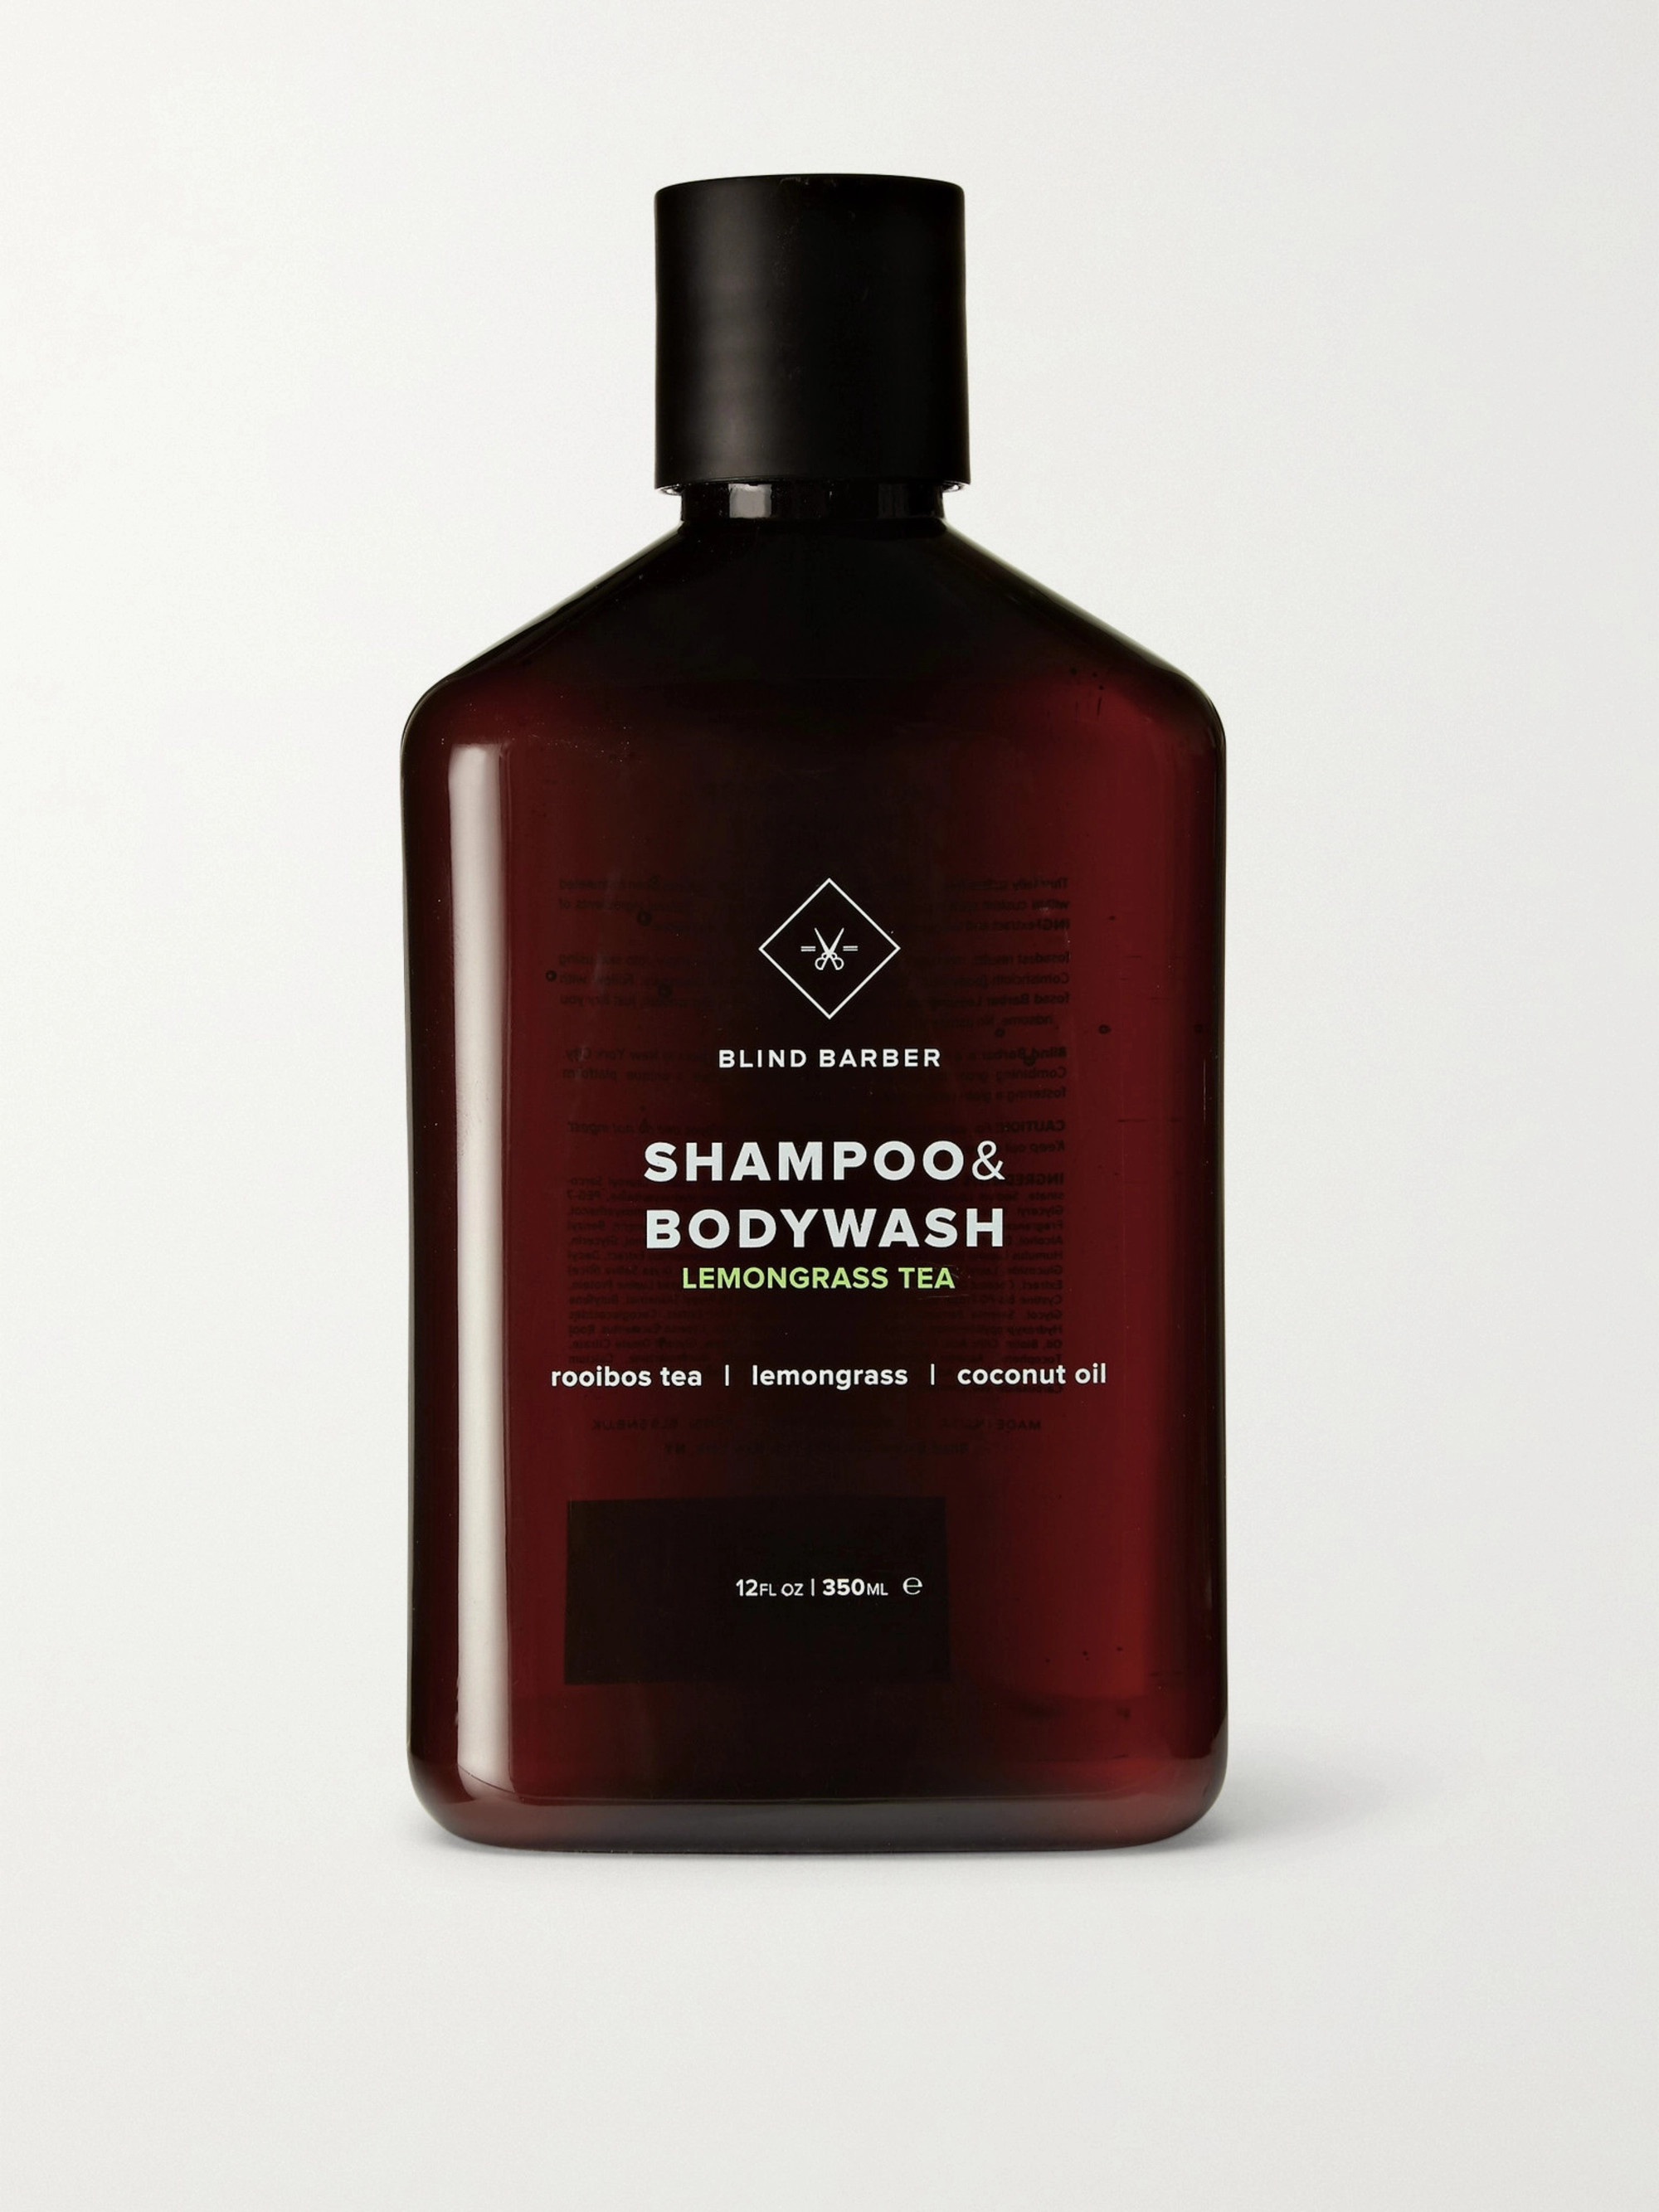 Blind Barber Lemongrass Tea Shampoo & Bodywash, 350ml